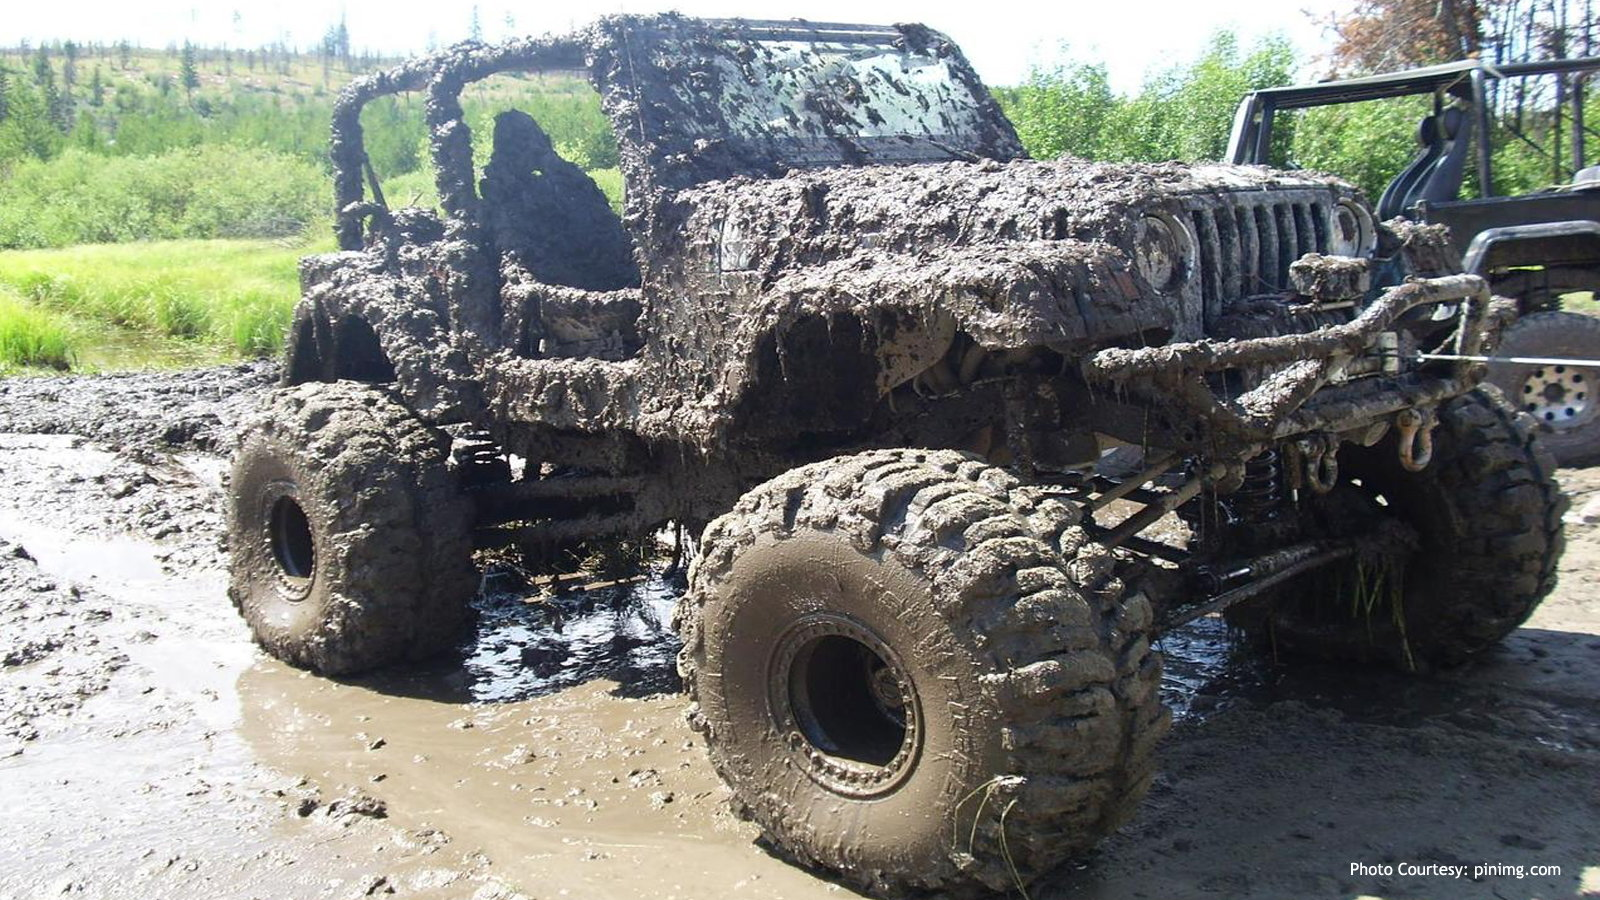 Don't Go Mudding Without the Top